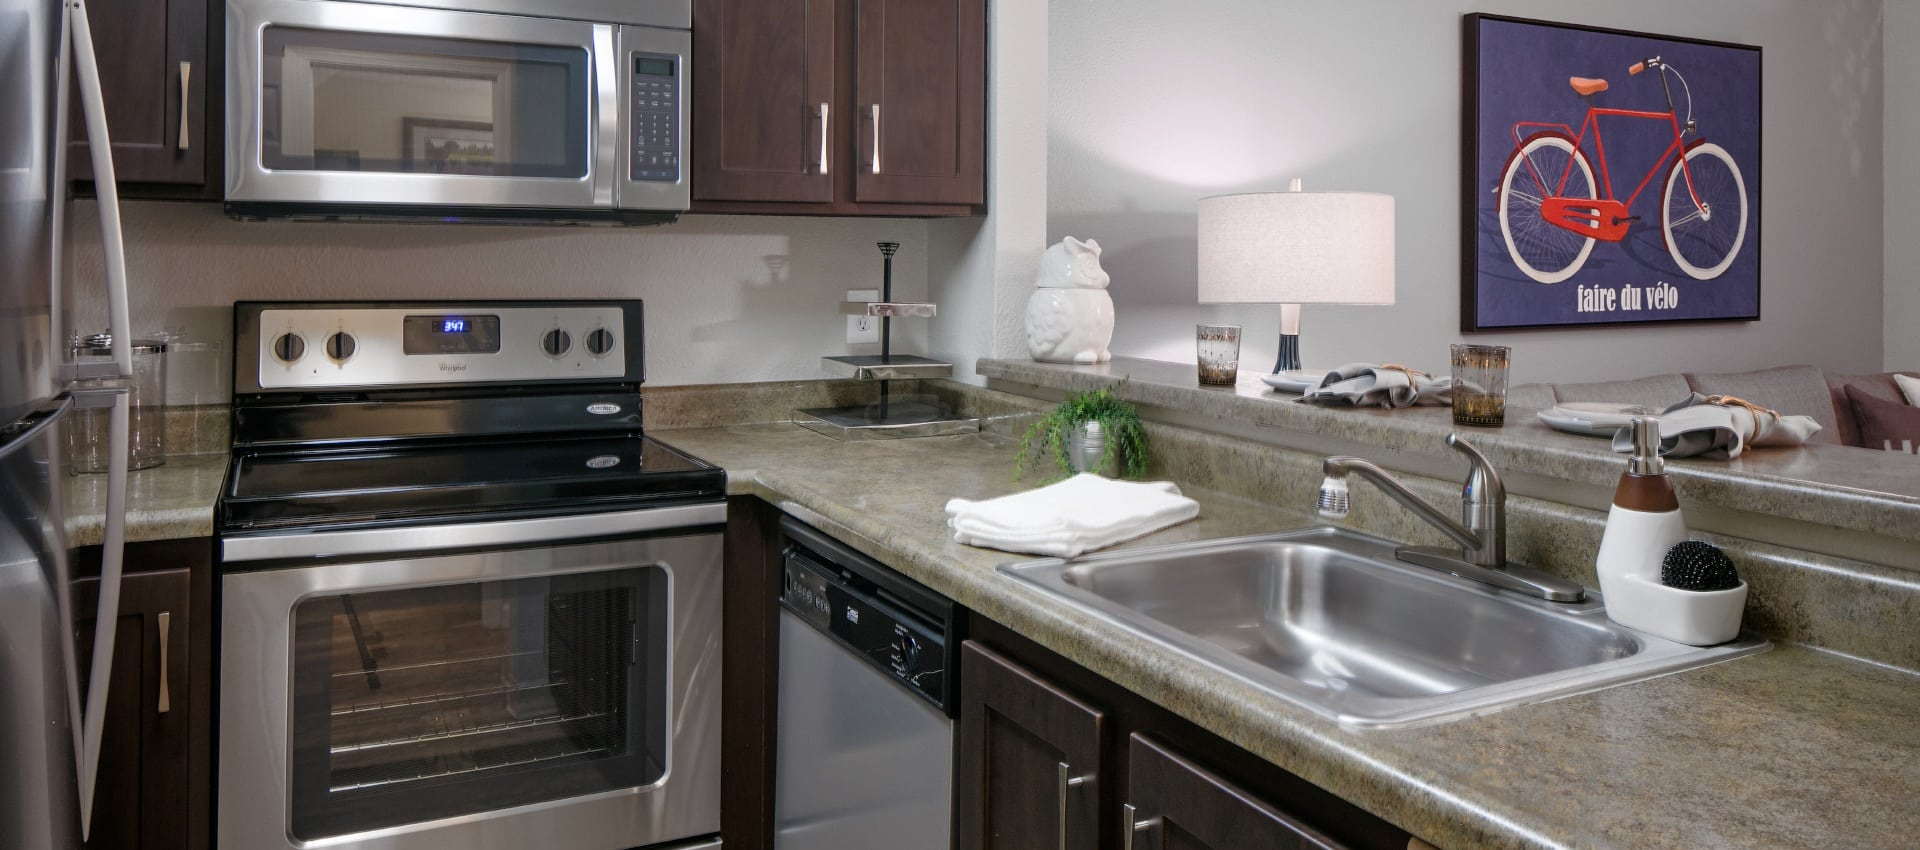 Standard Kitchen With Stainless Appliances at Waterhouse Place in Beaverton, OR